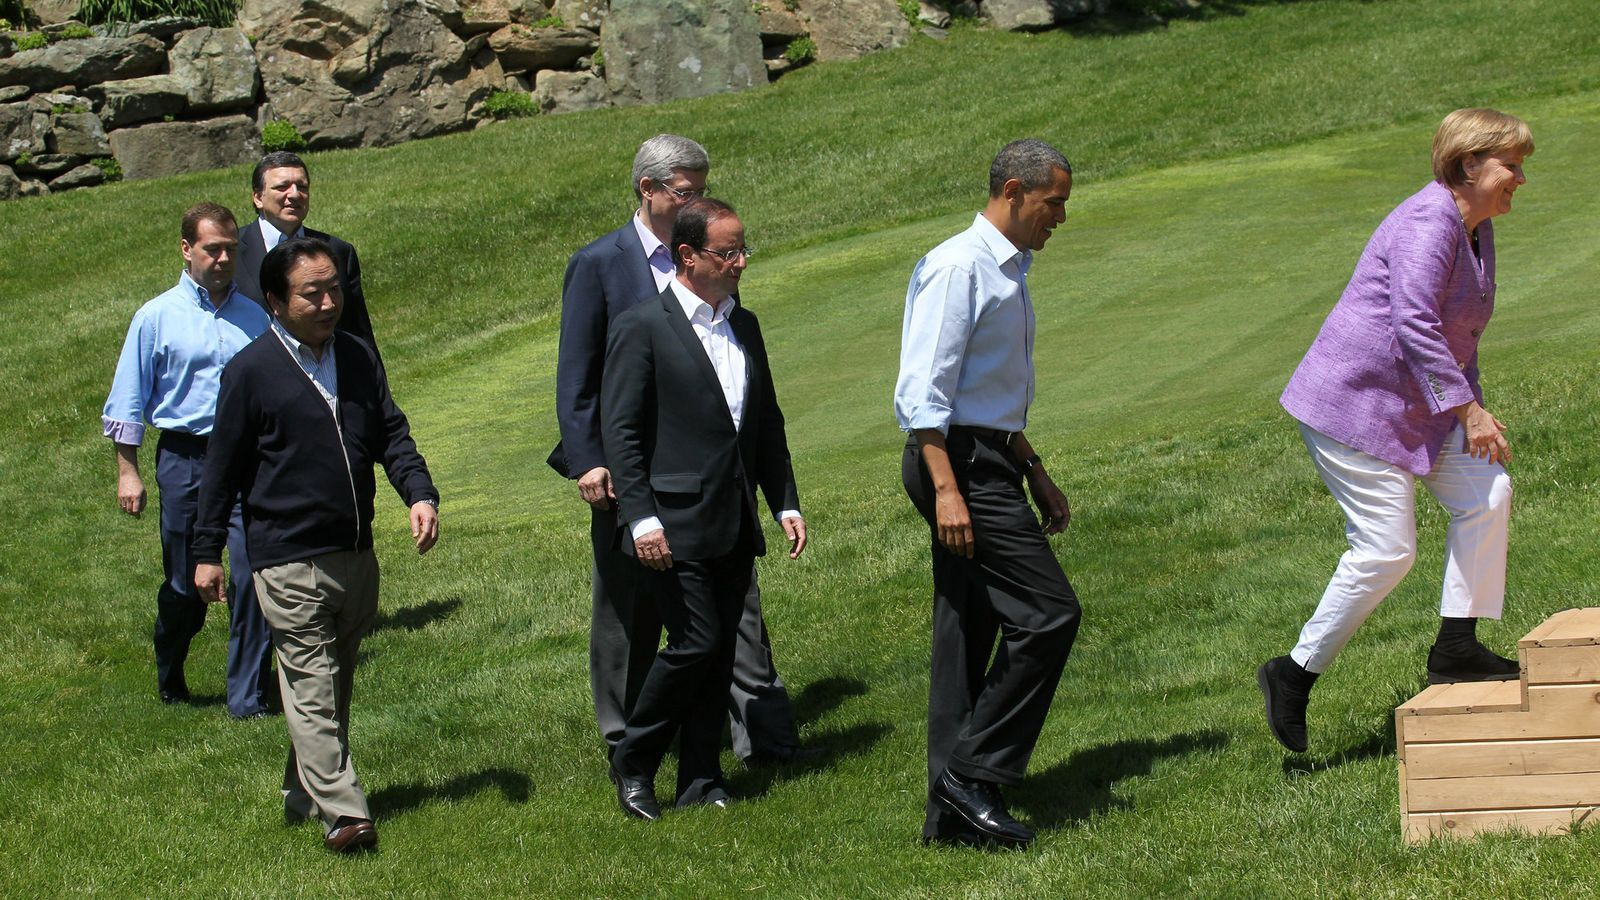 Els líders del G-8 arriben a Camp David. / SASHA MORDOVETS / GETTY IMAGES